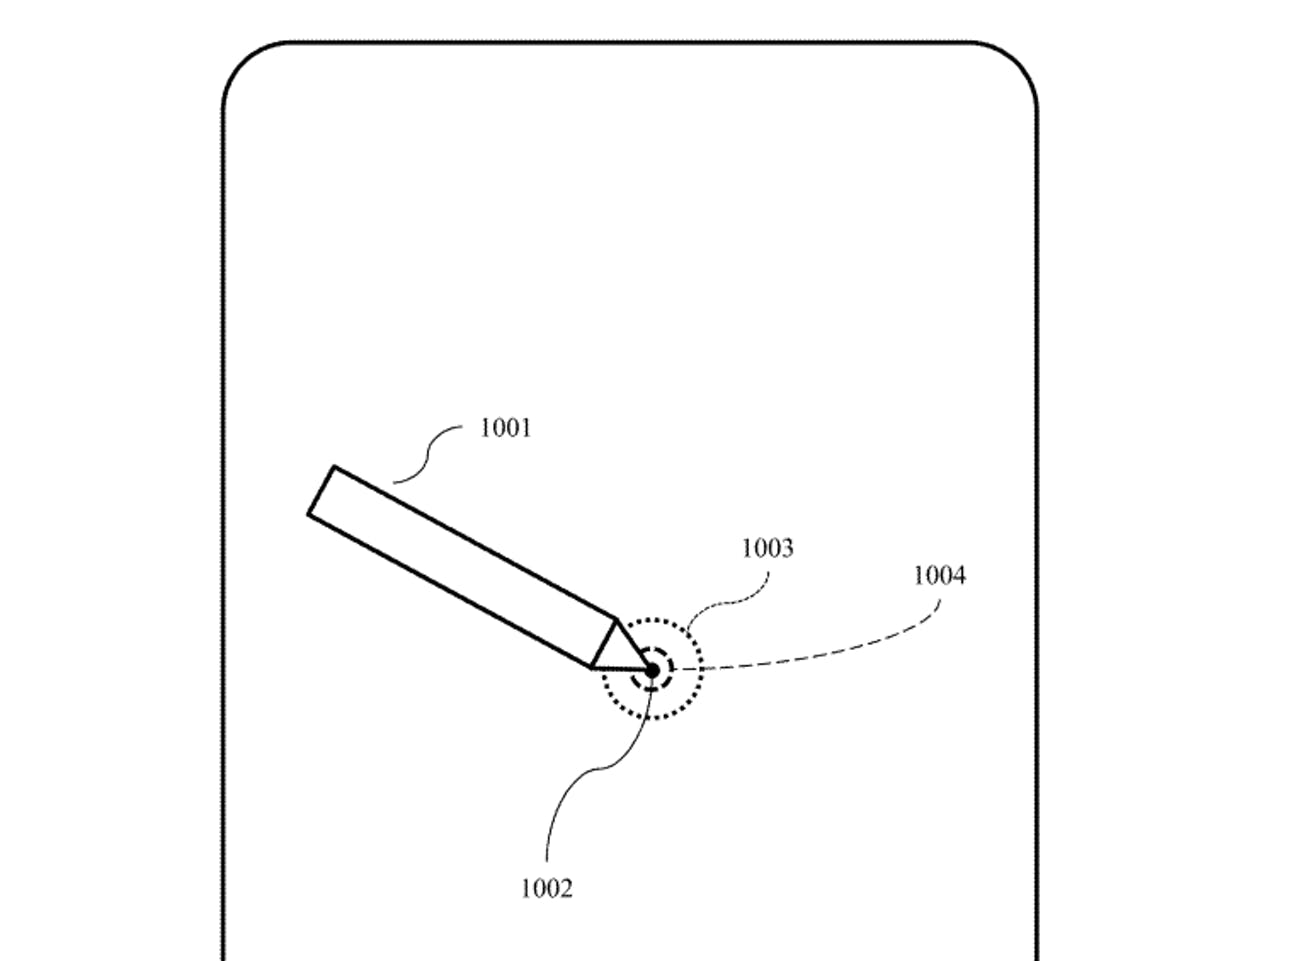 The system as described in the patent application.